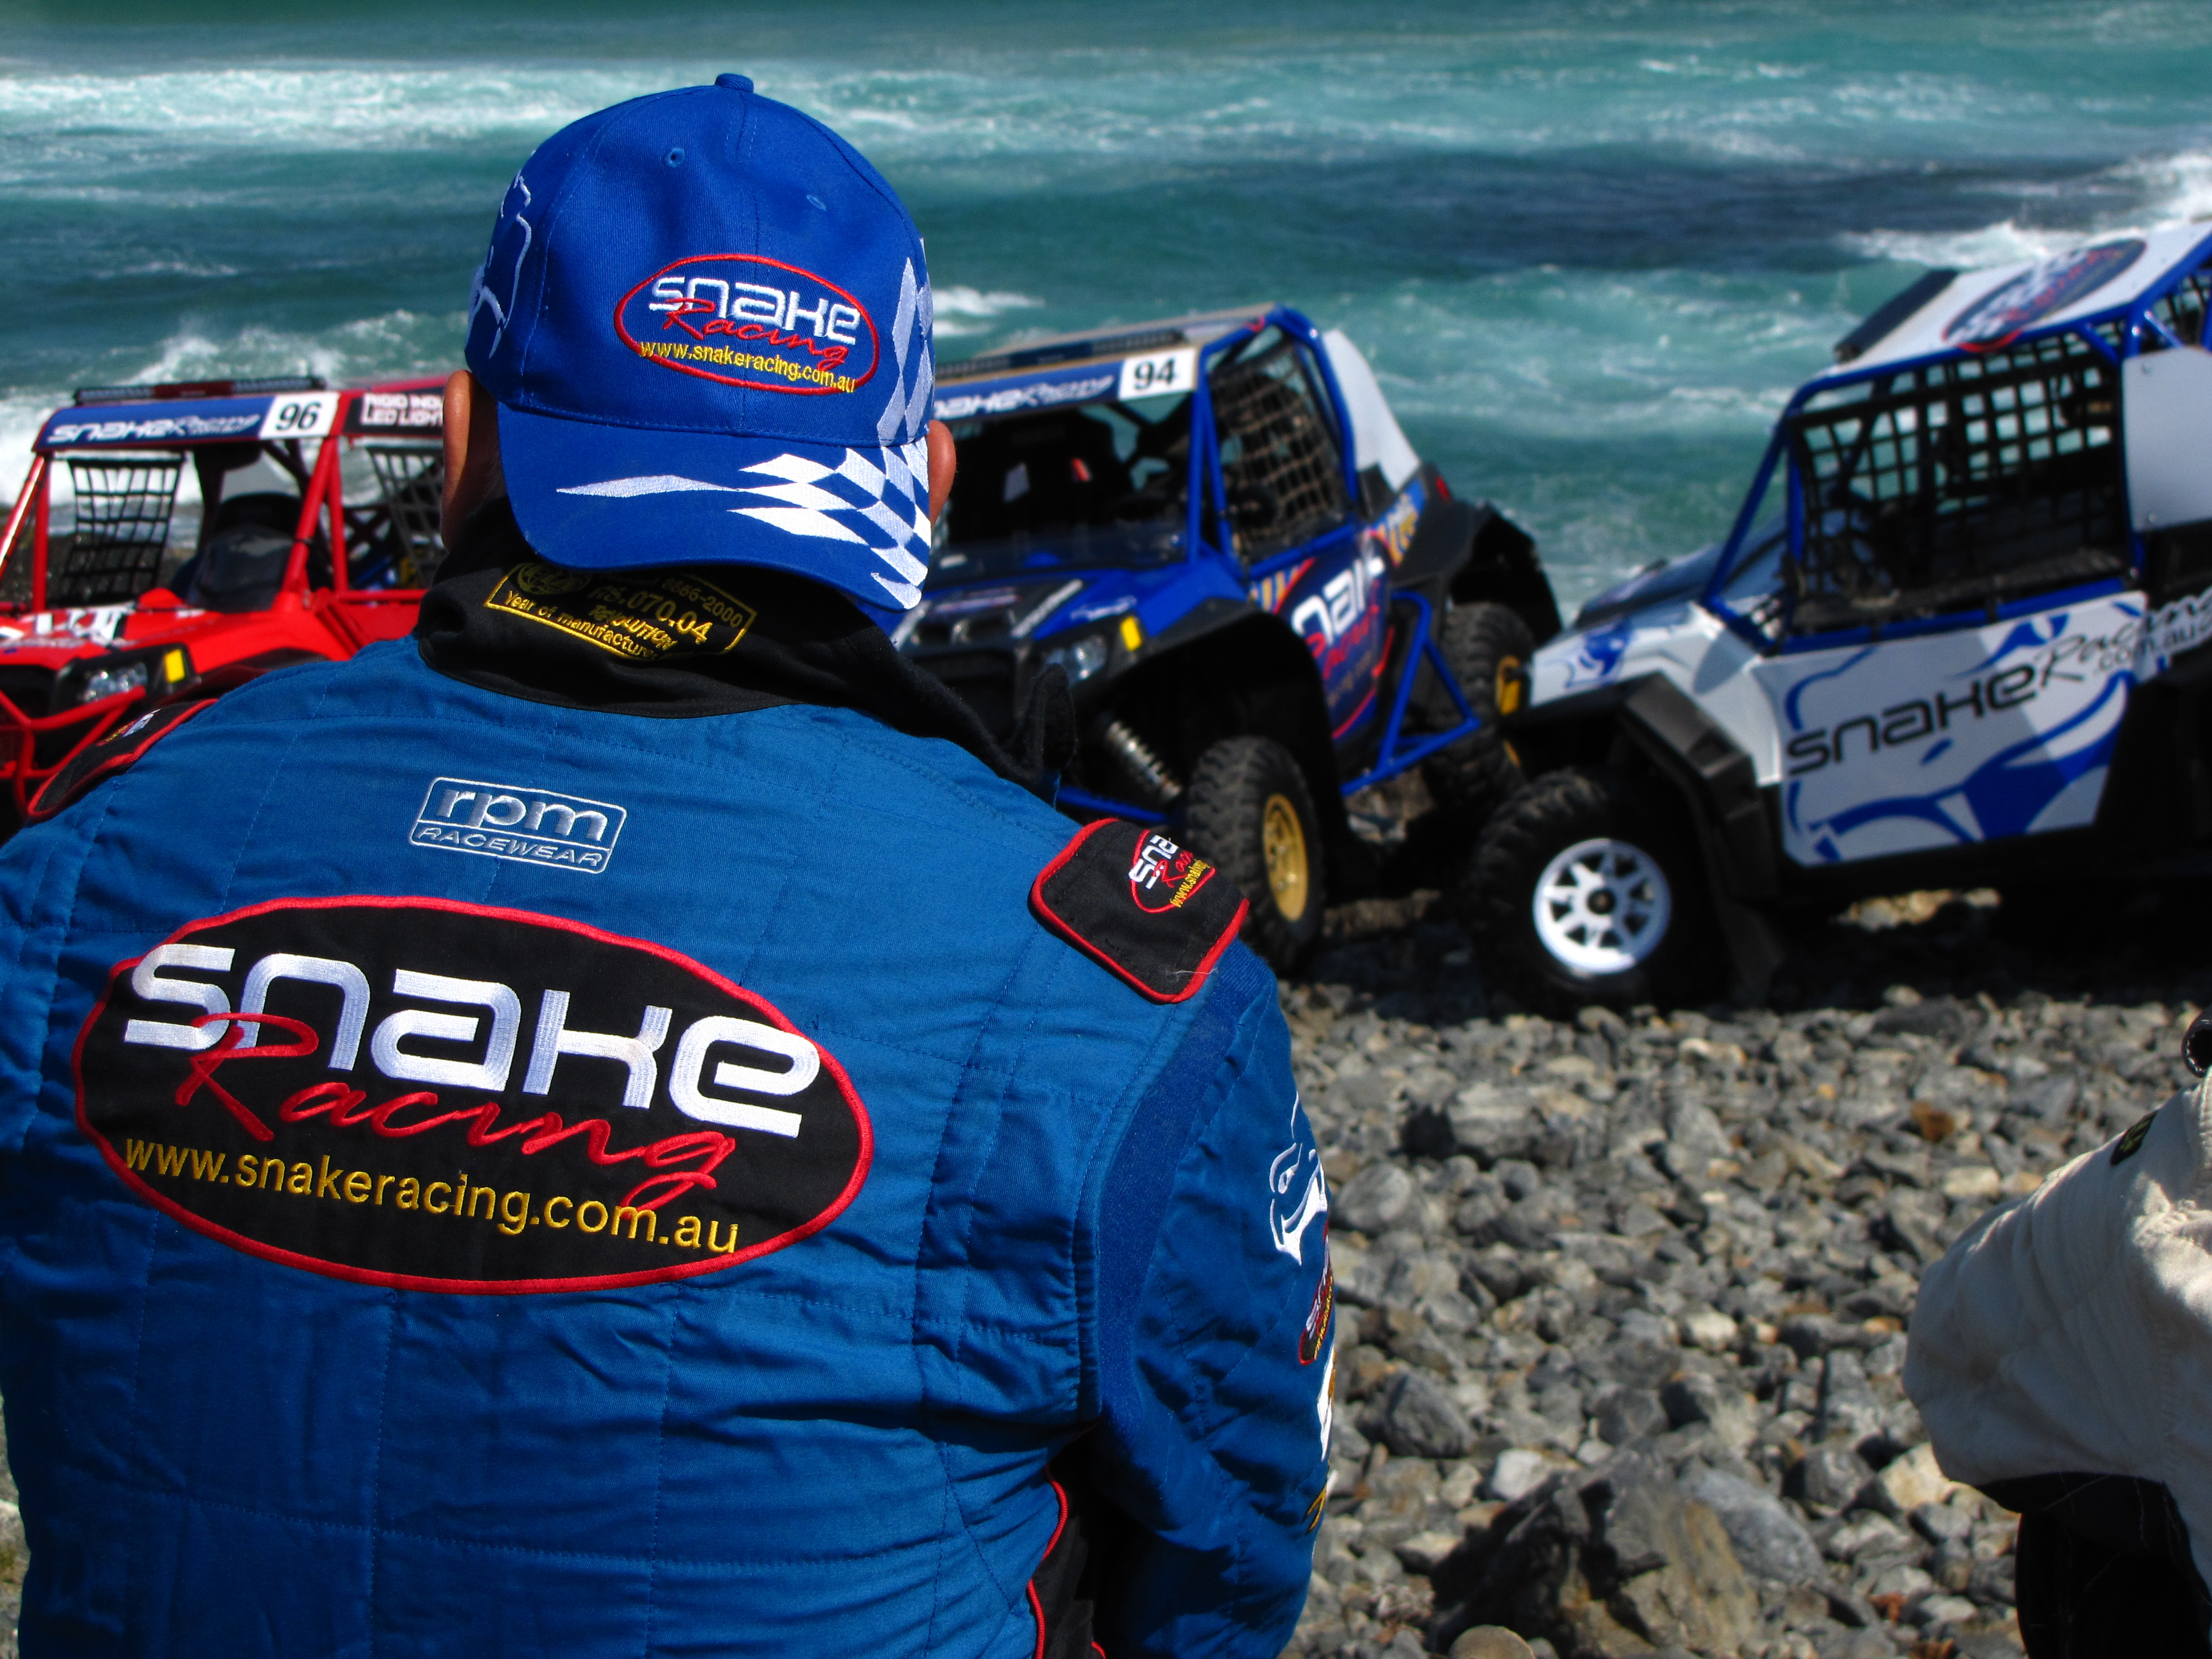 les Chivers | Snake Racing | 4x4 Accessories, Suspension Kits and